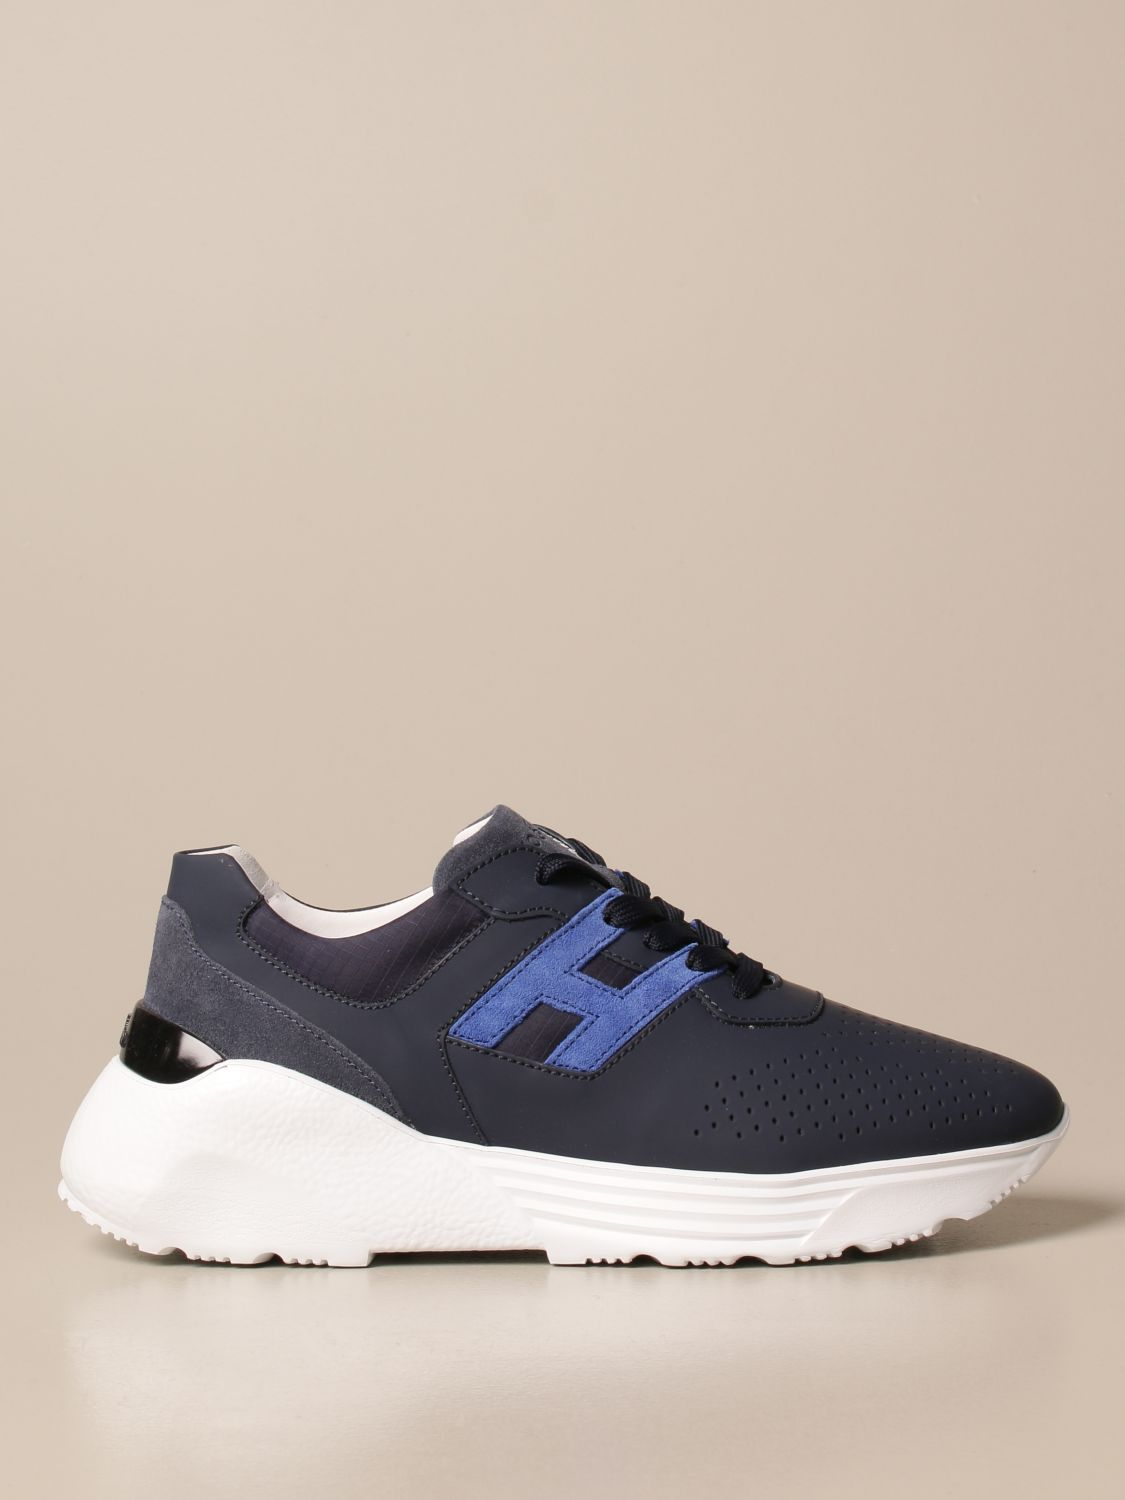 Active One Hogan perforated sneakers